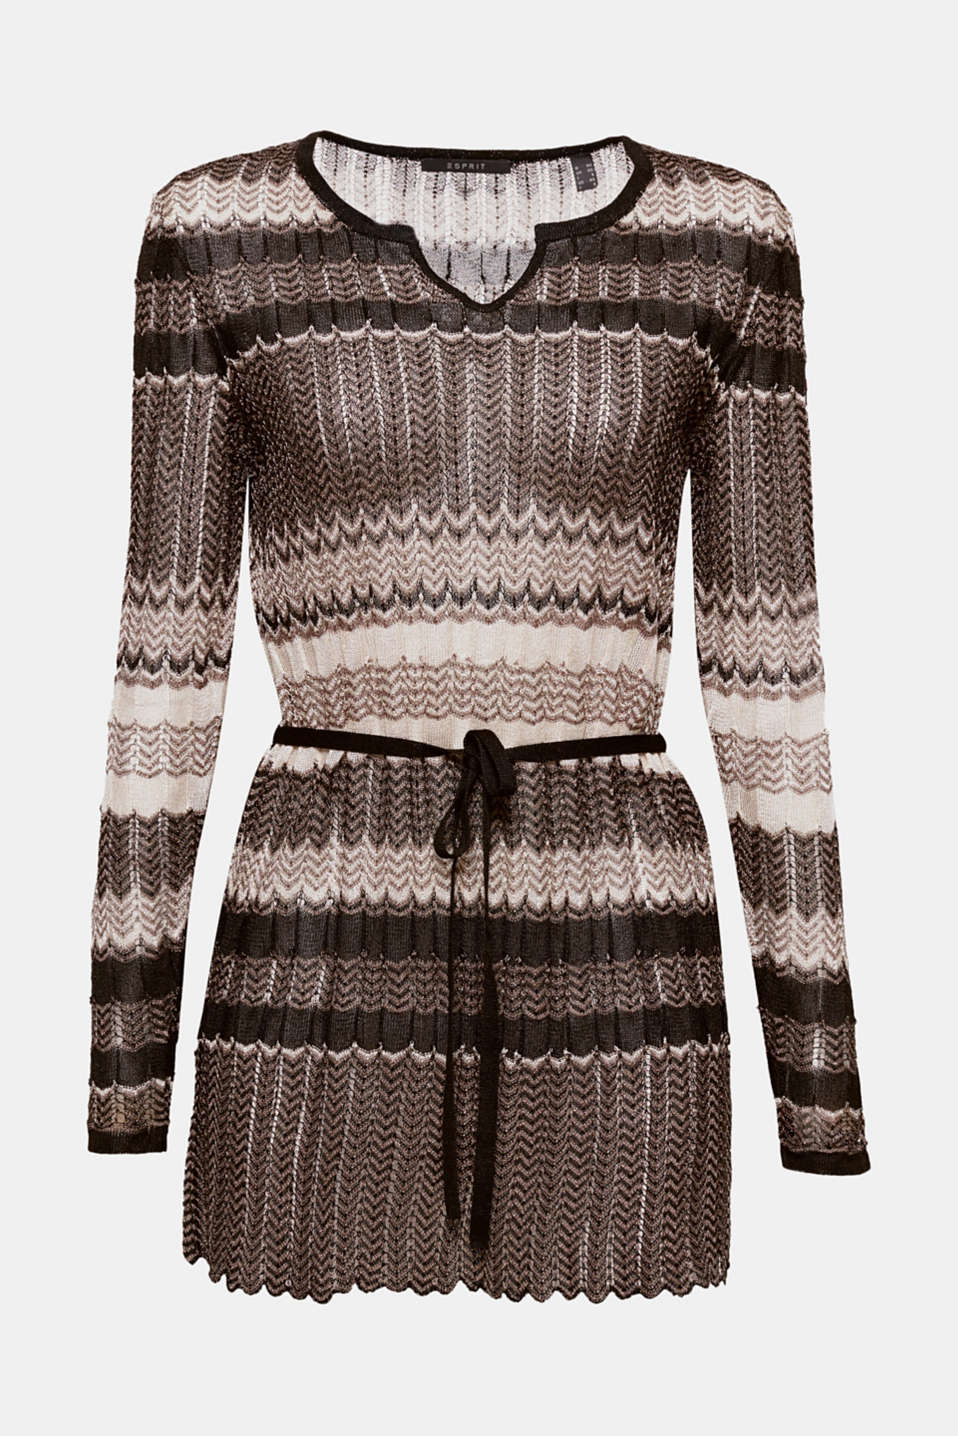 A new spin on the fine knit look! This tunic is a real head-turner with its zigzag pattern, small v-neckline and belt.